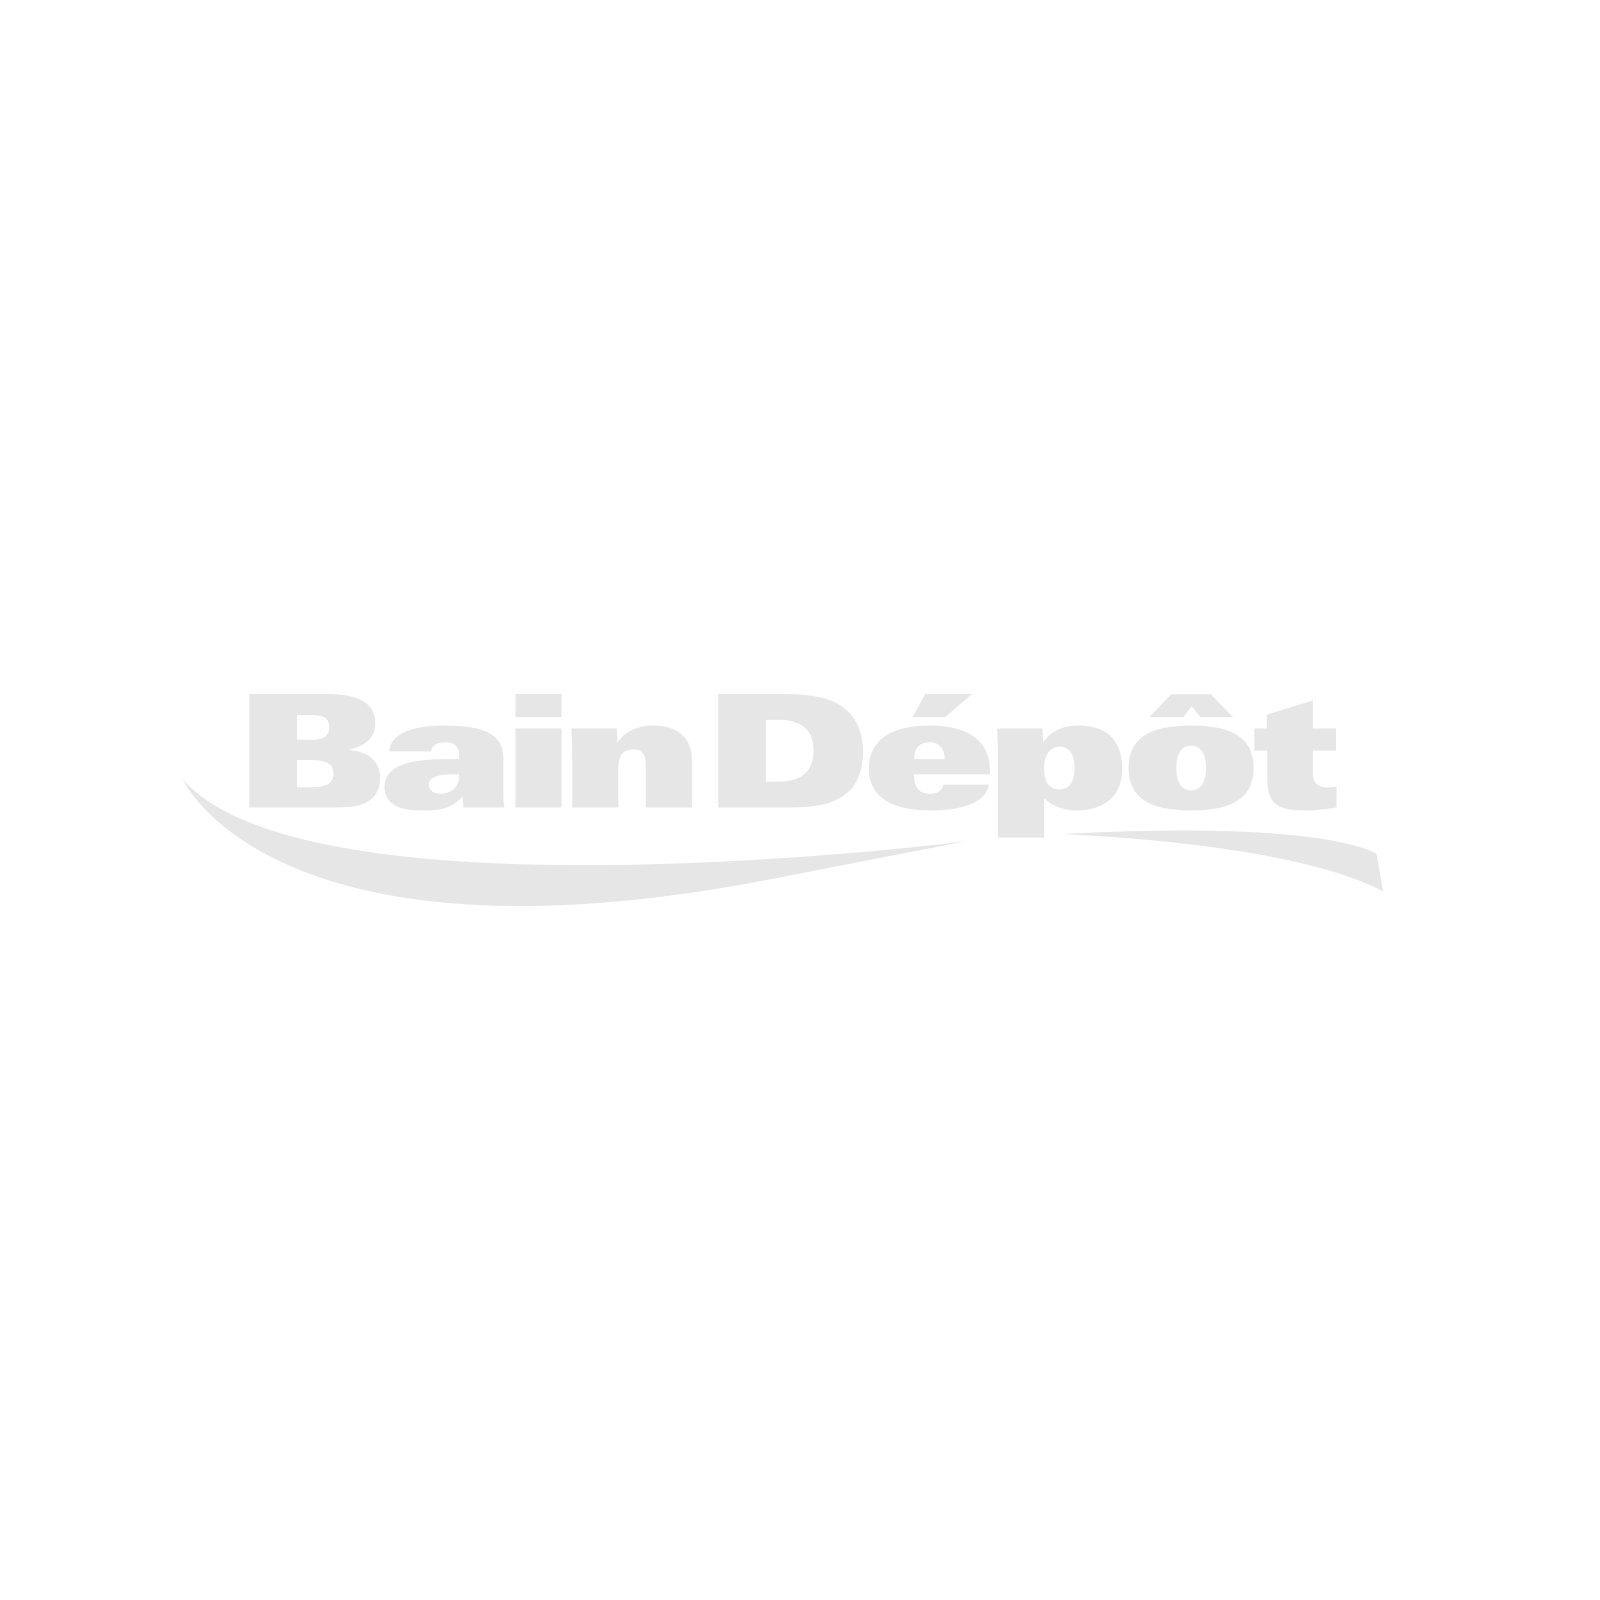 "60"" x 36"" rectangular shower base for right corner installation with hidden drain"